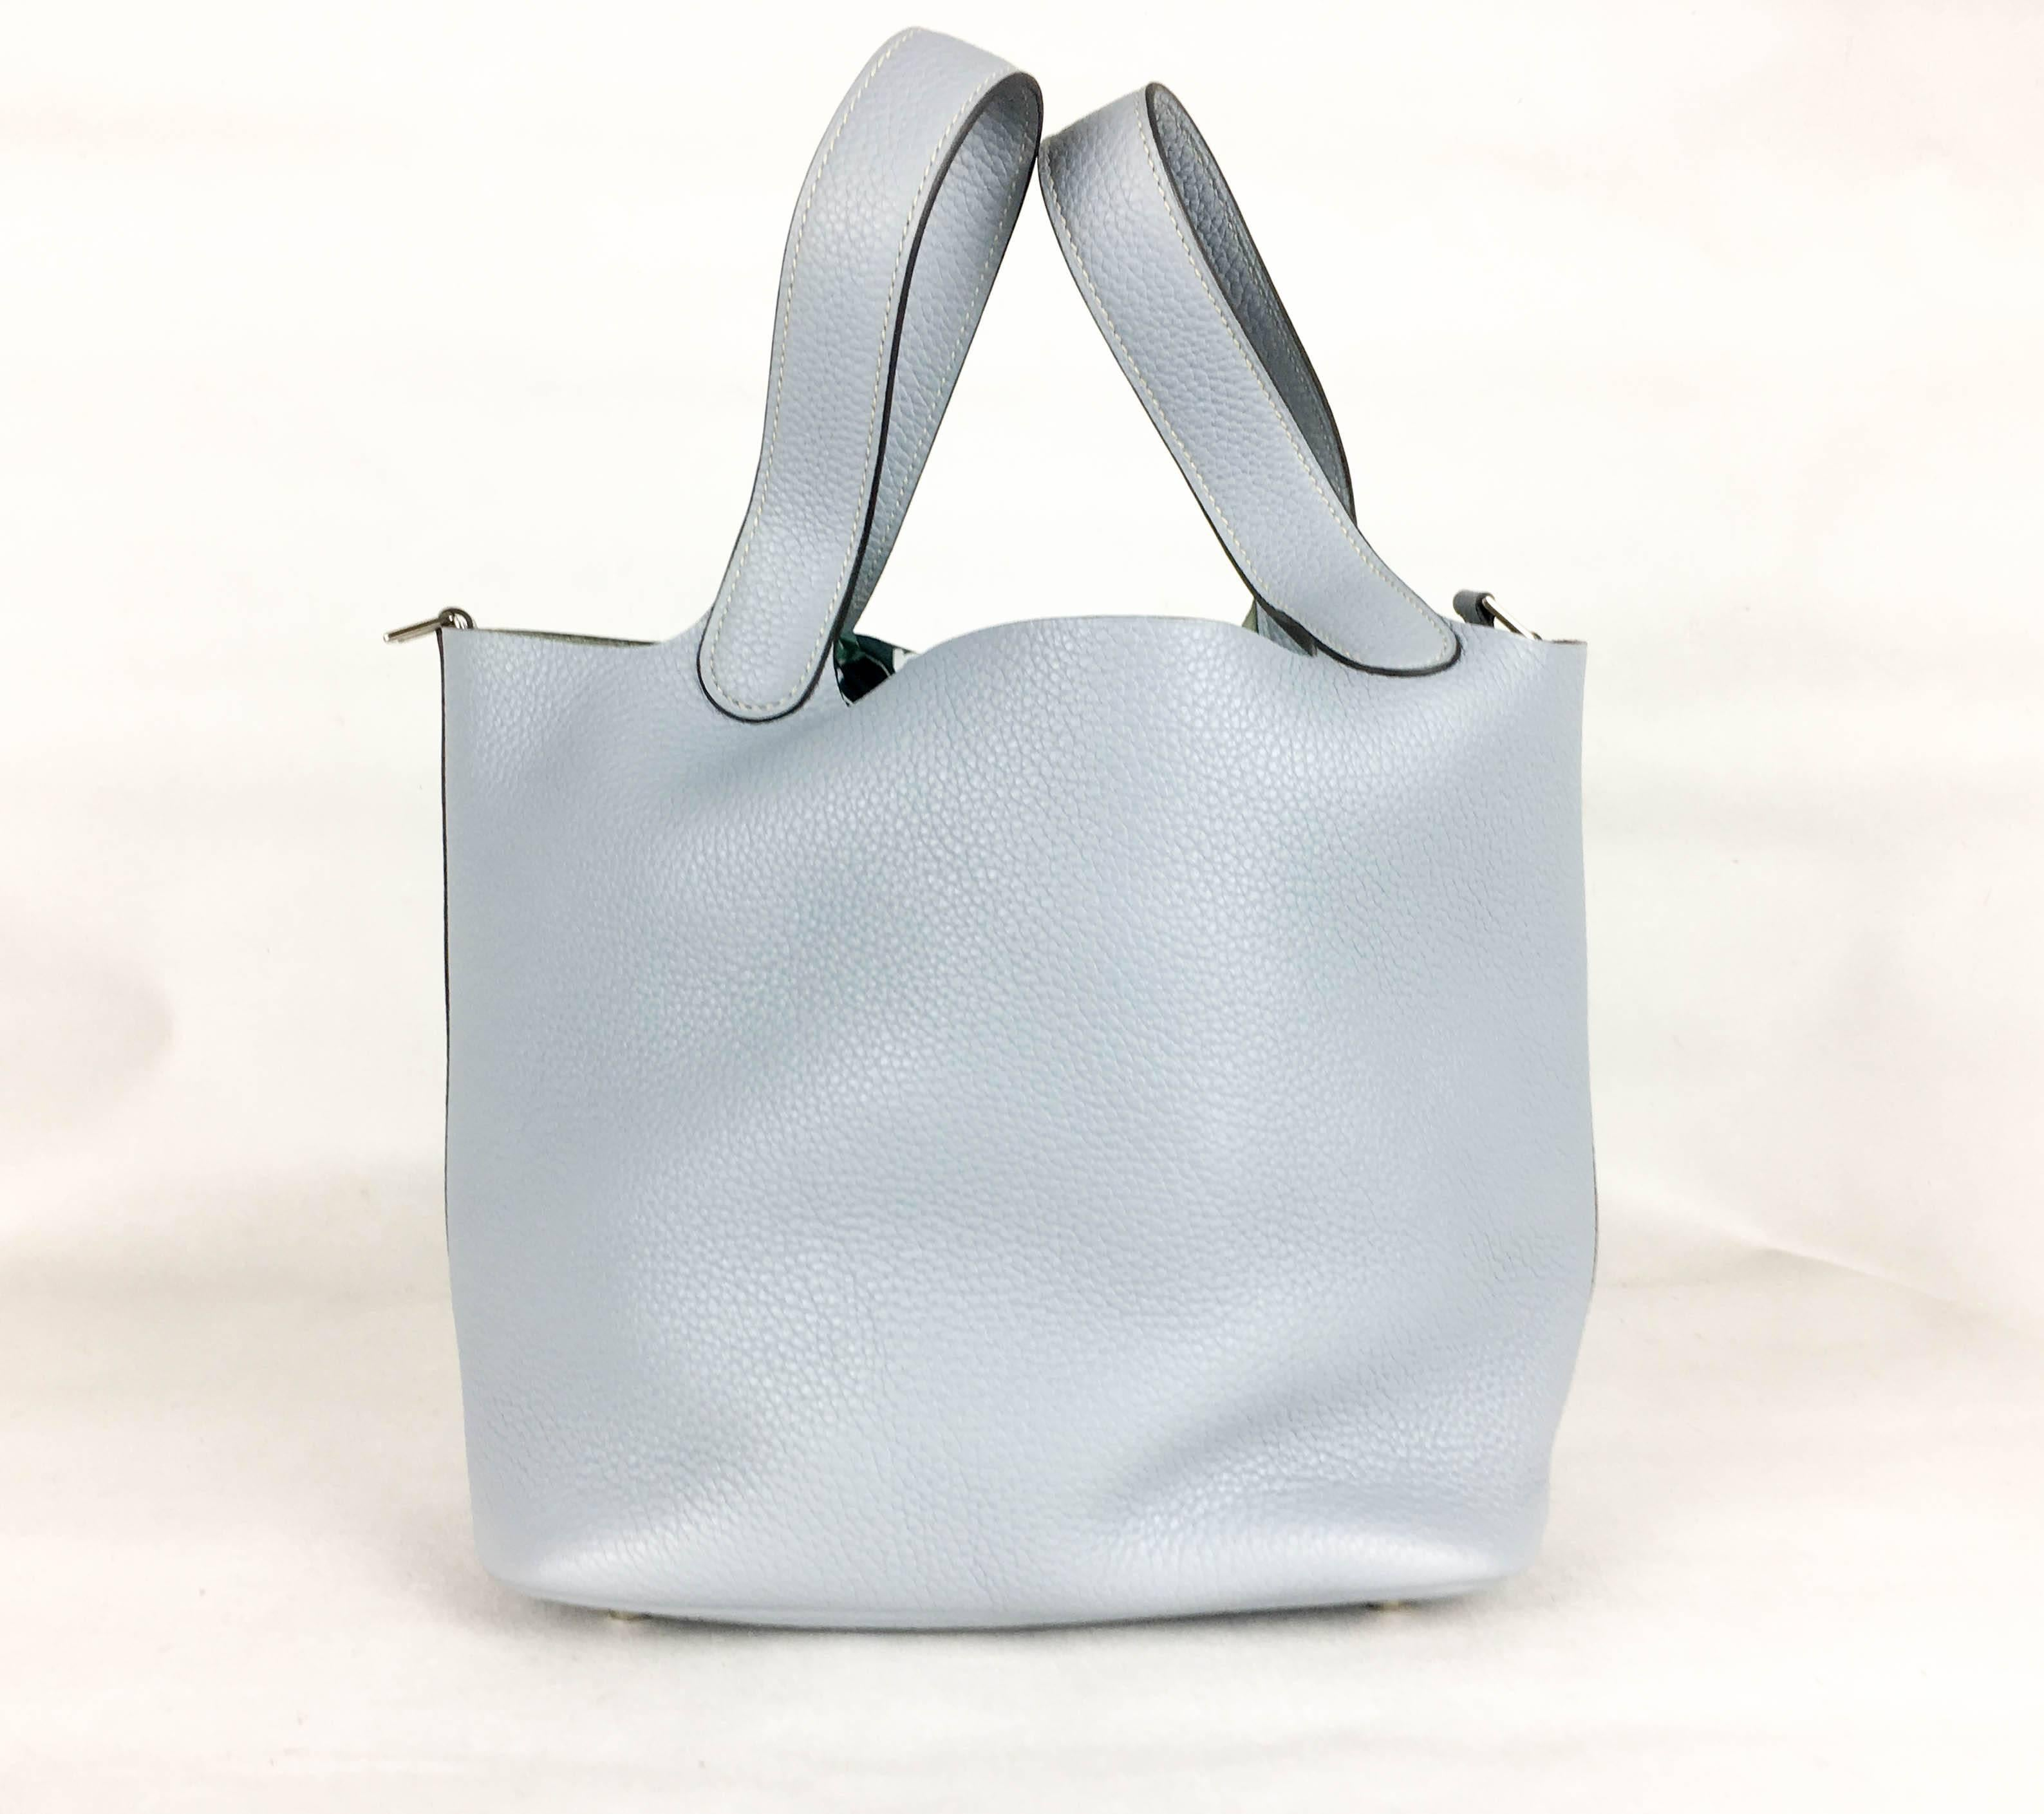 464c8454fb8a ... new zealand gray 2014 hermes picotin 22 handbag in pale blue clemence  leather for sale 7180d